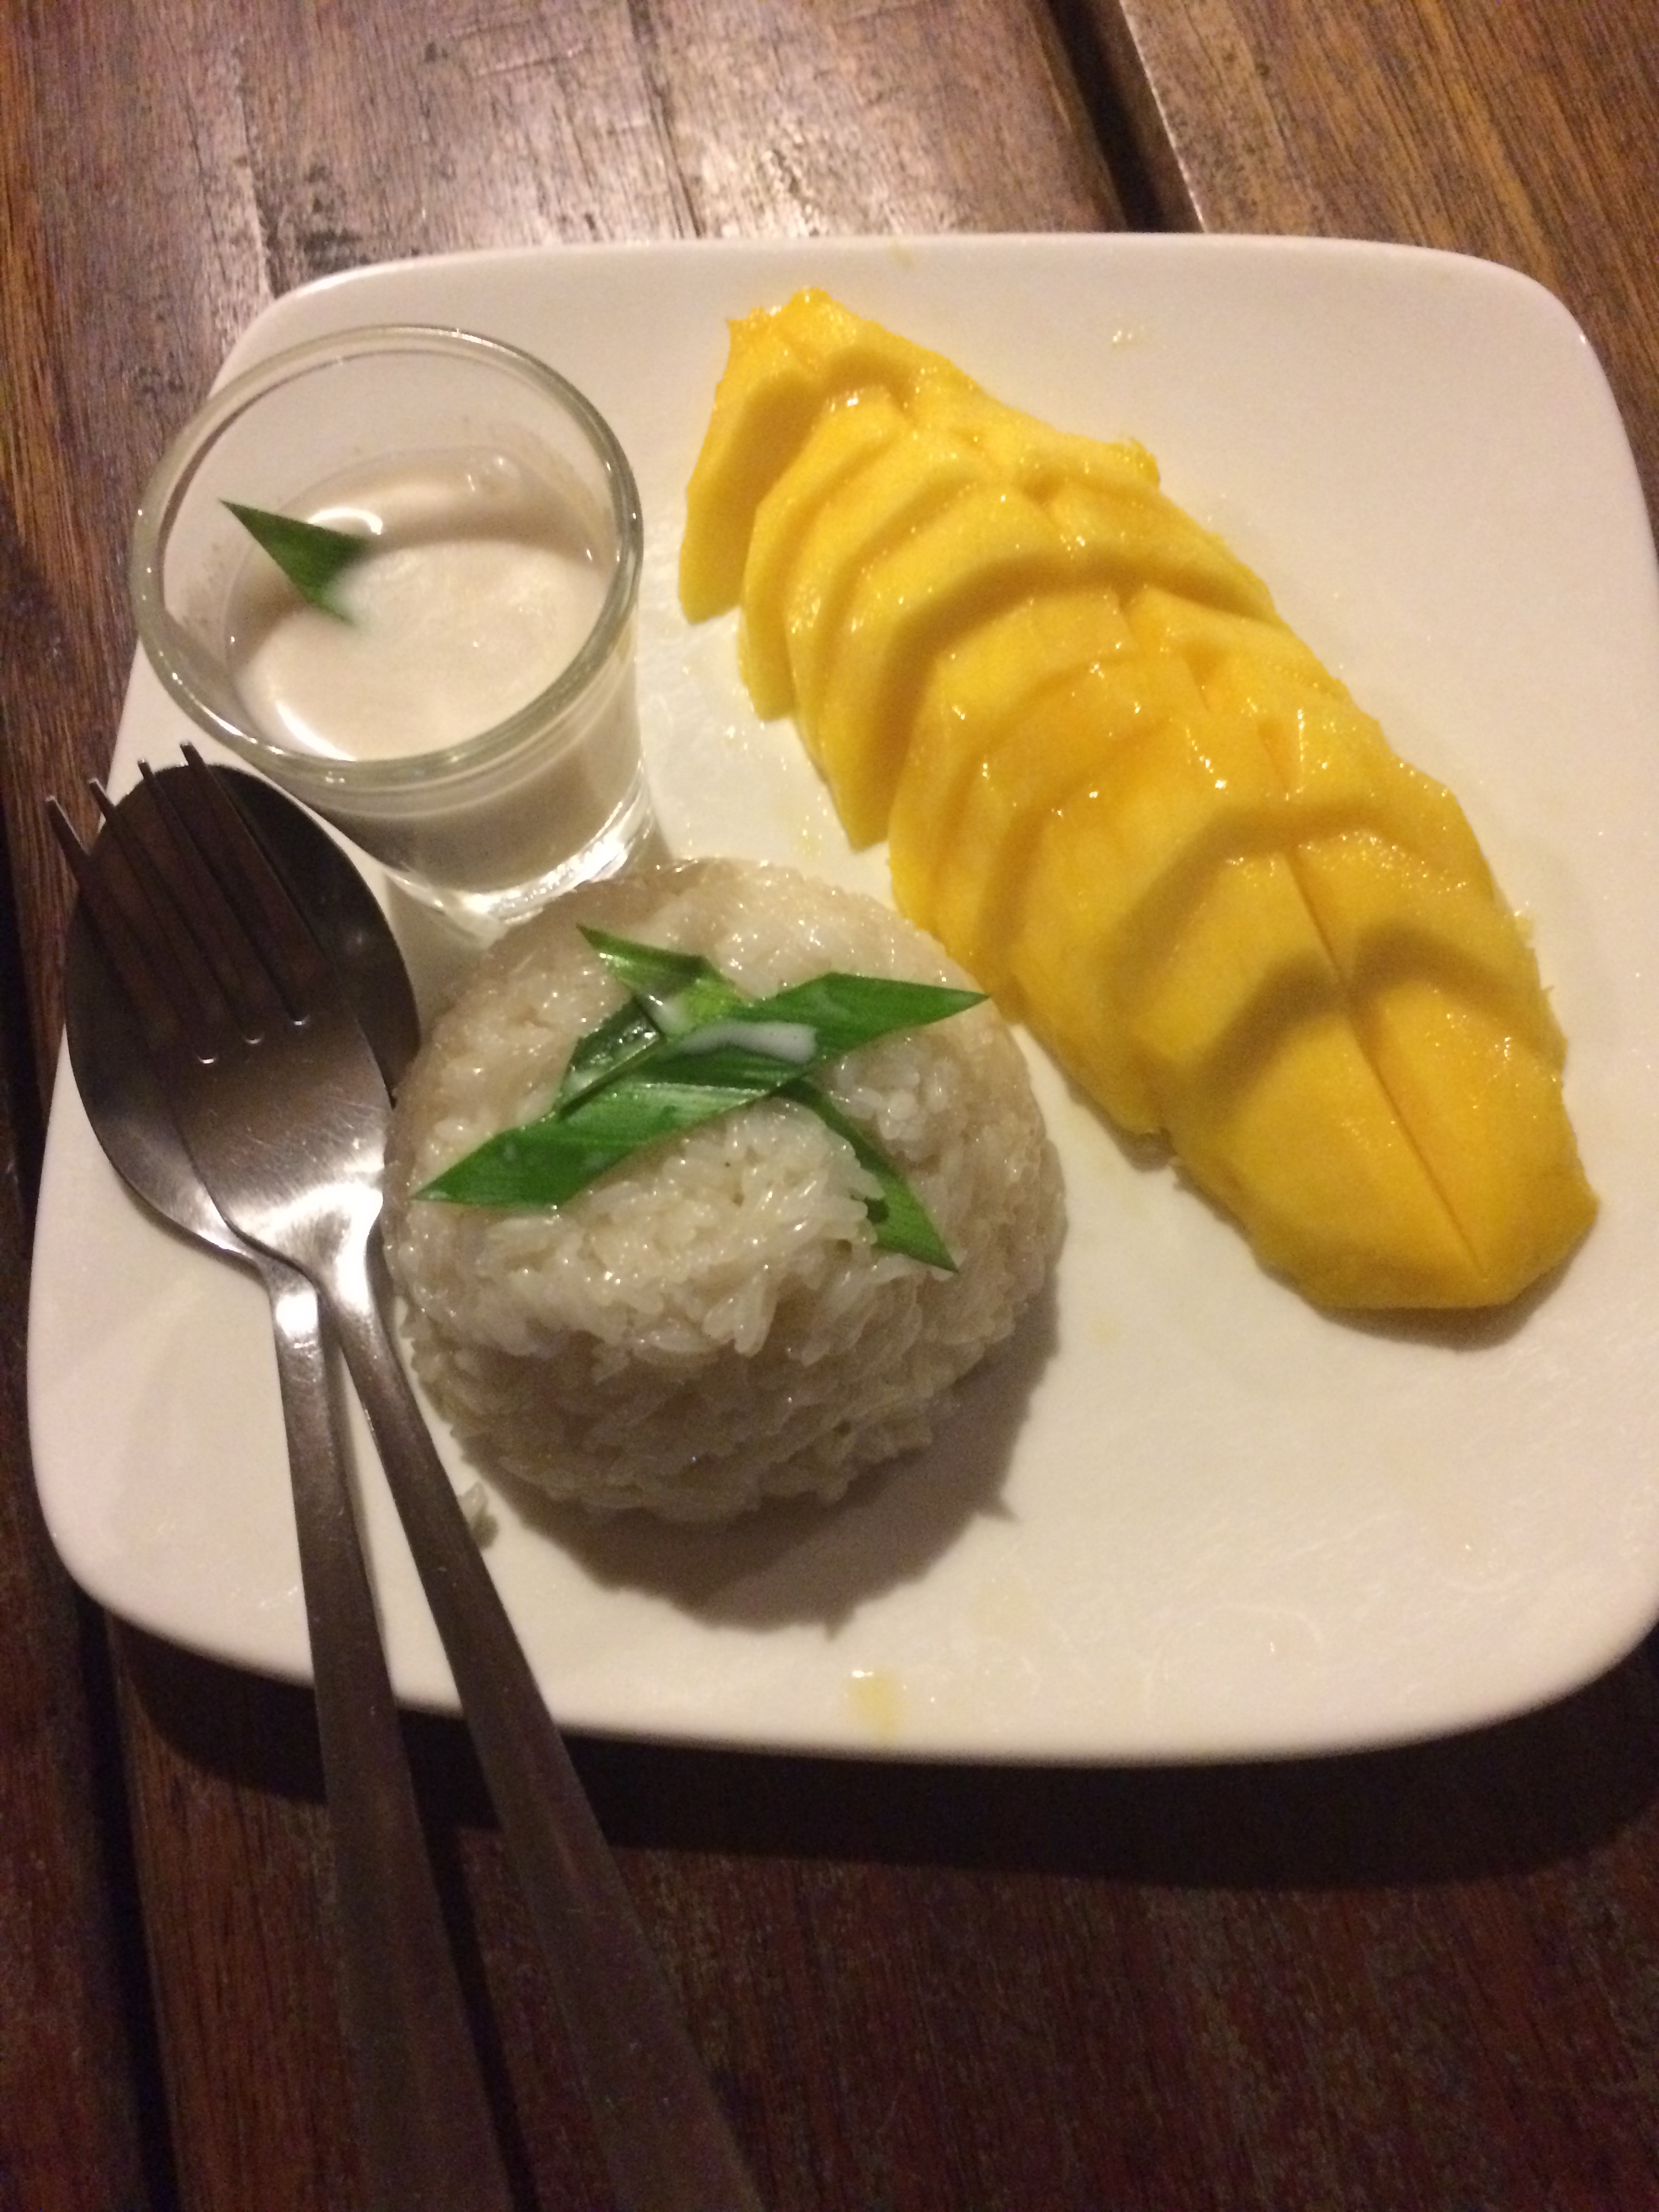 Mango Sticky Rice The Infamous Thai Dessert